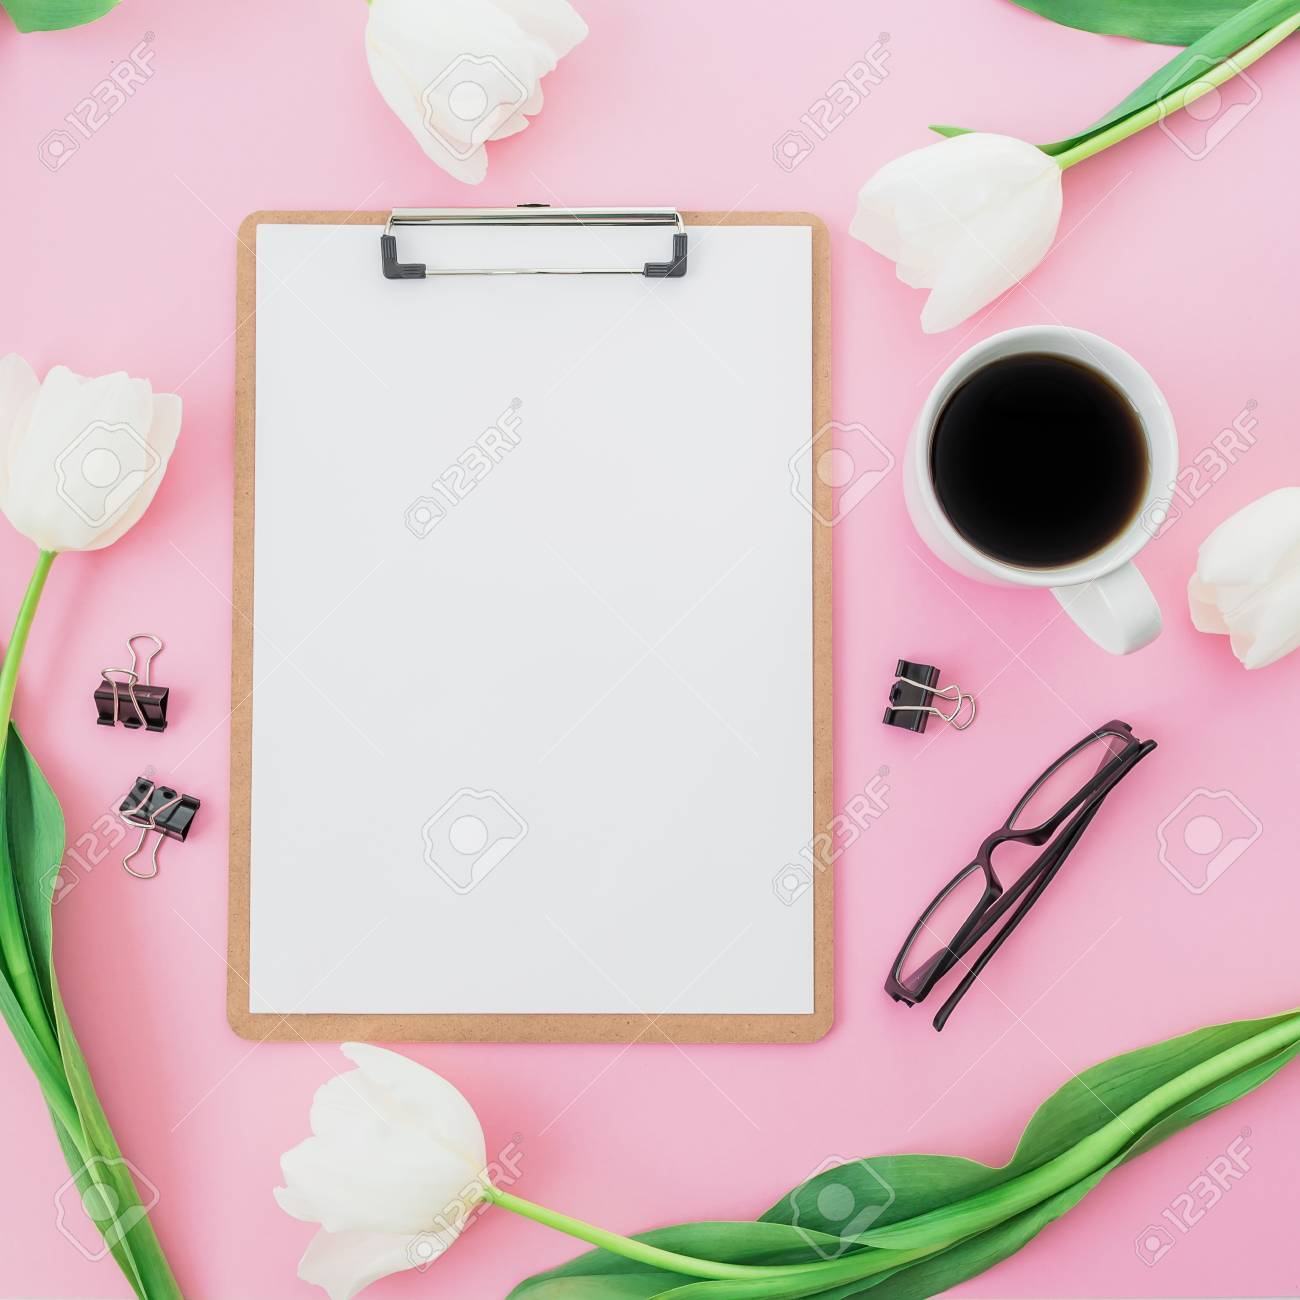 tulips flowers with mug of coffee clipboard and glasses on pink